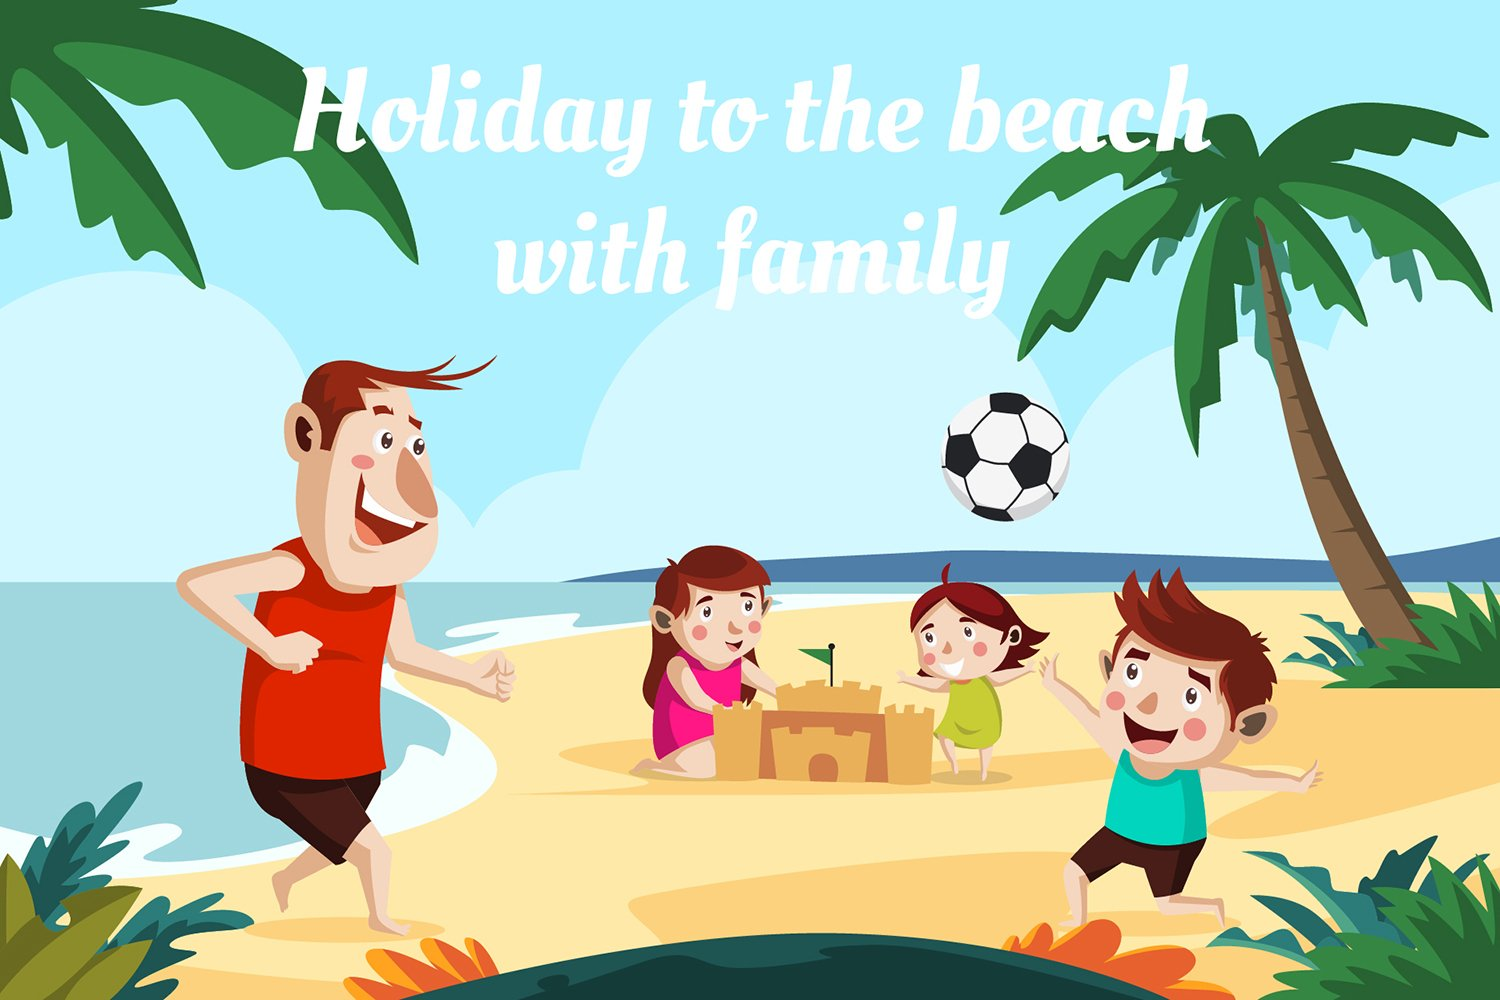 Holiday to the beach with family-vector illustration example image 1